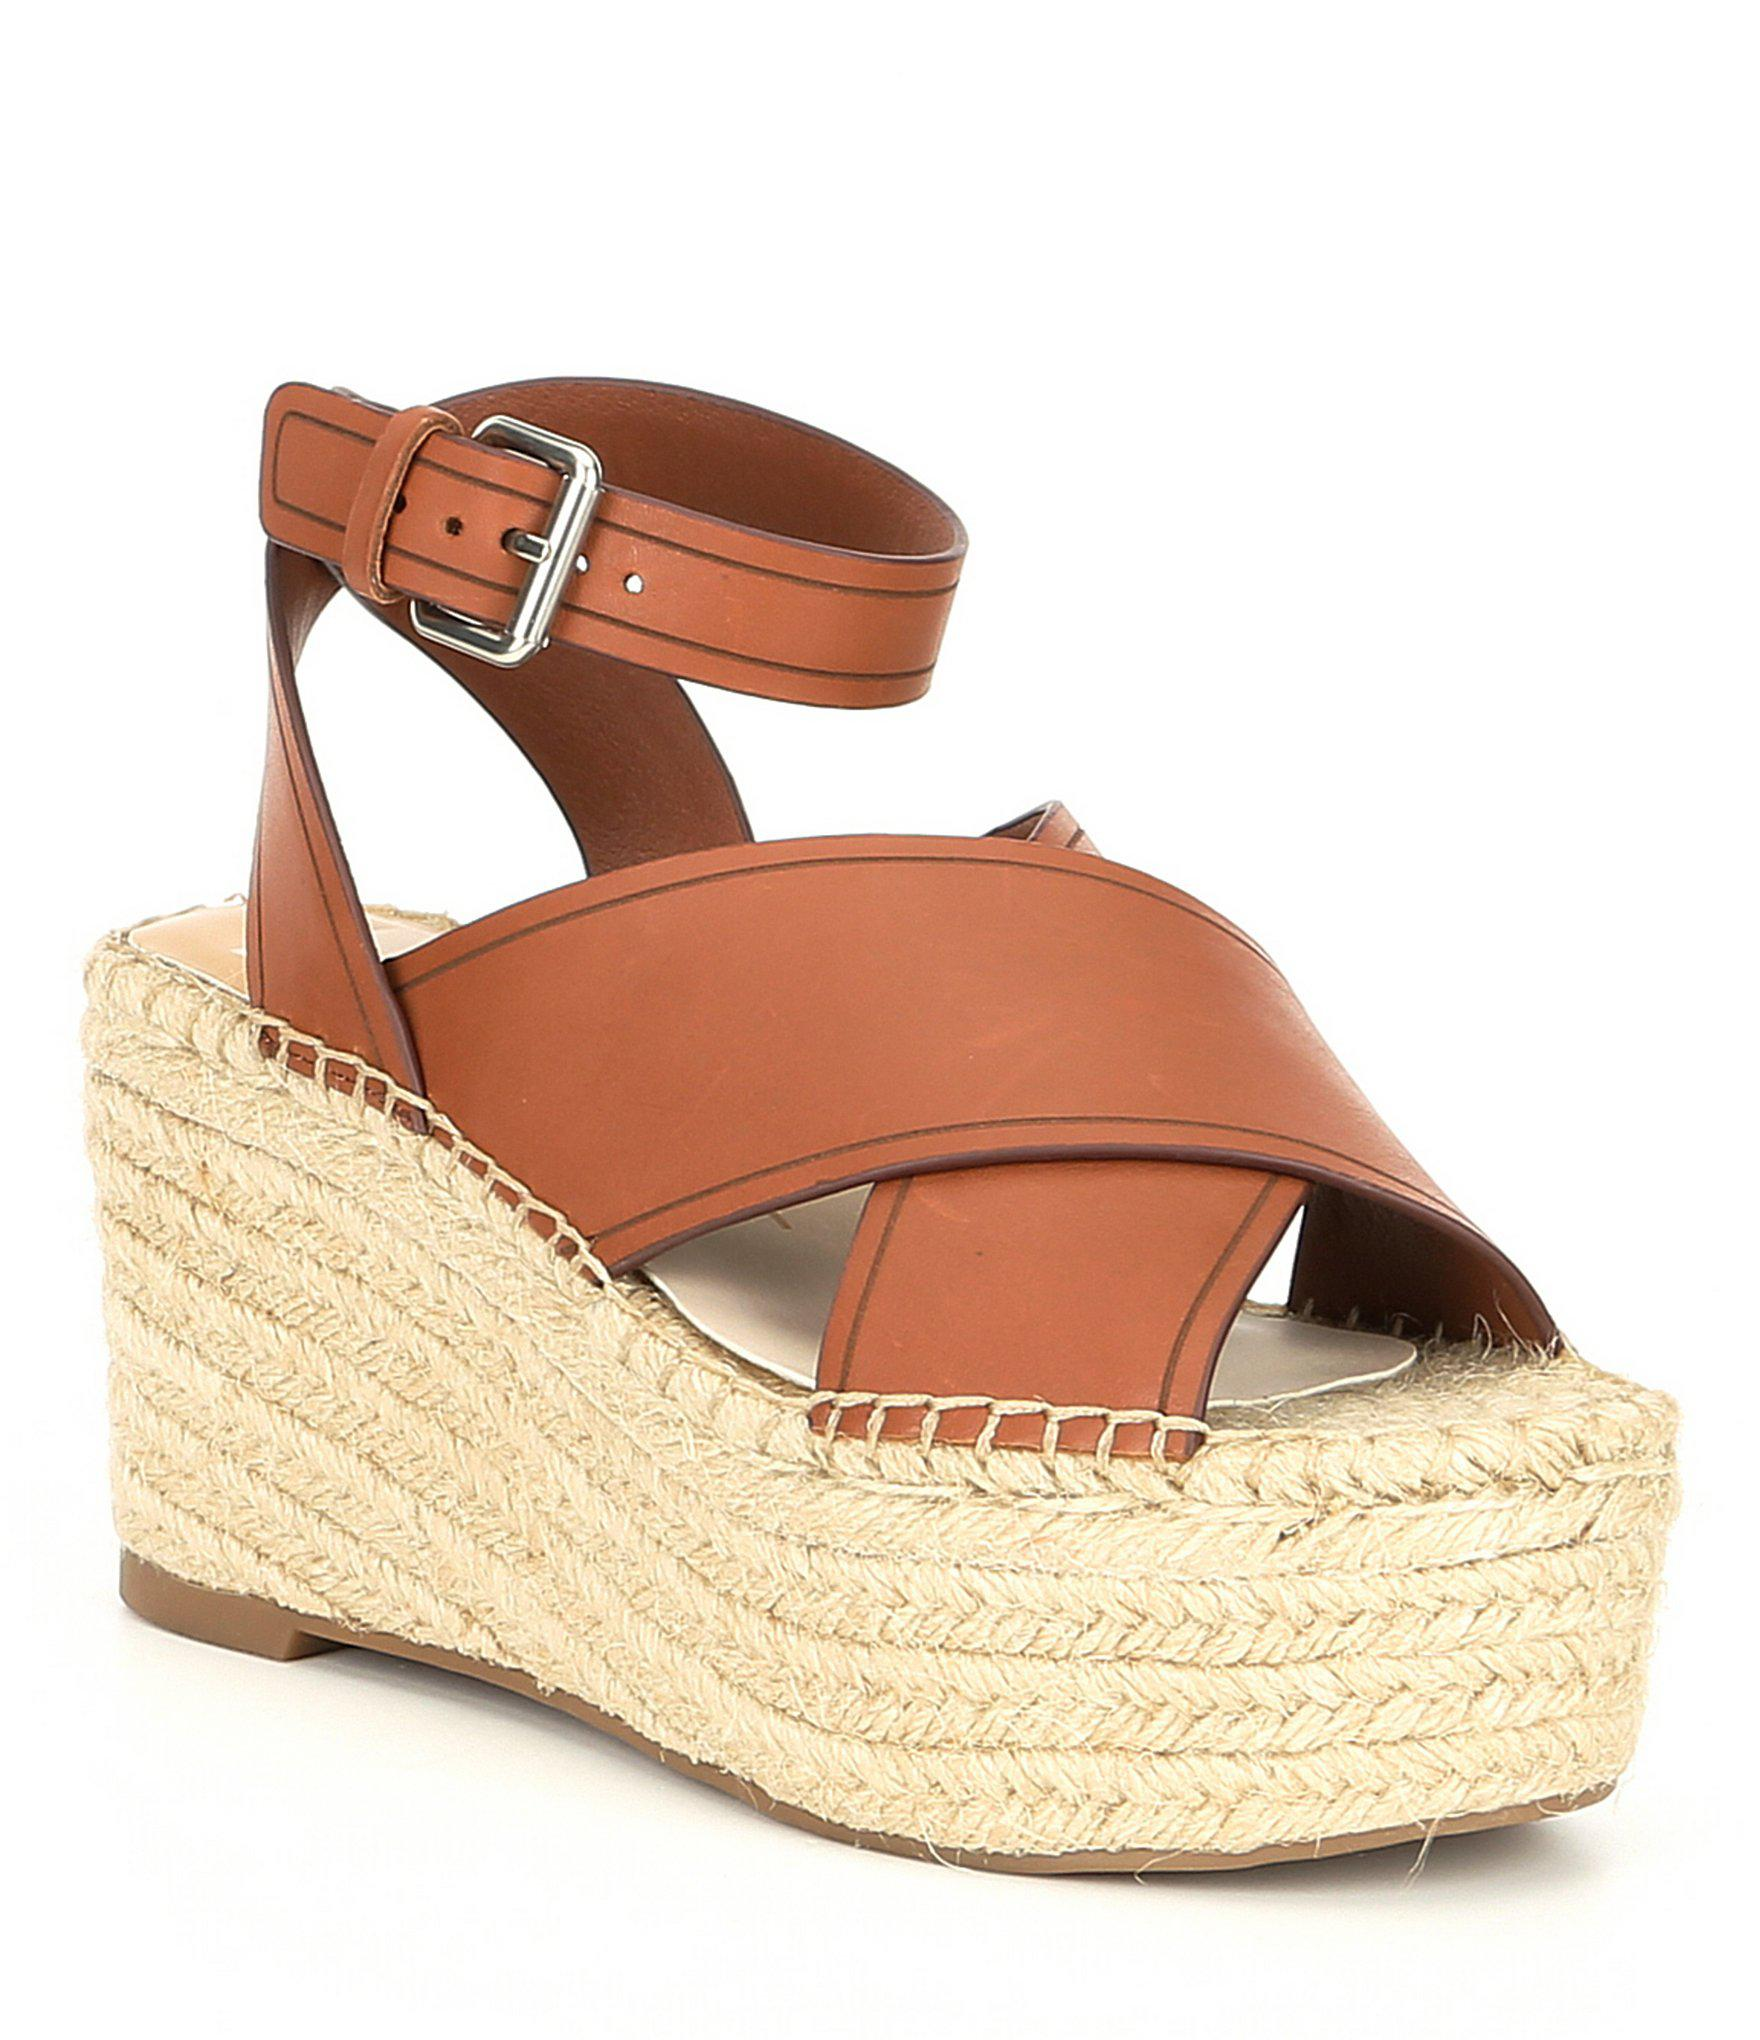 6e7019a87d1 Lyst - Dolce Vita Carsie Leather Espadrille Wedges in Brown